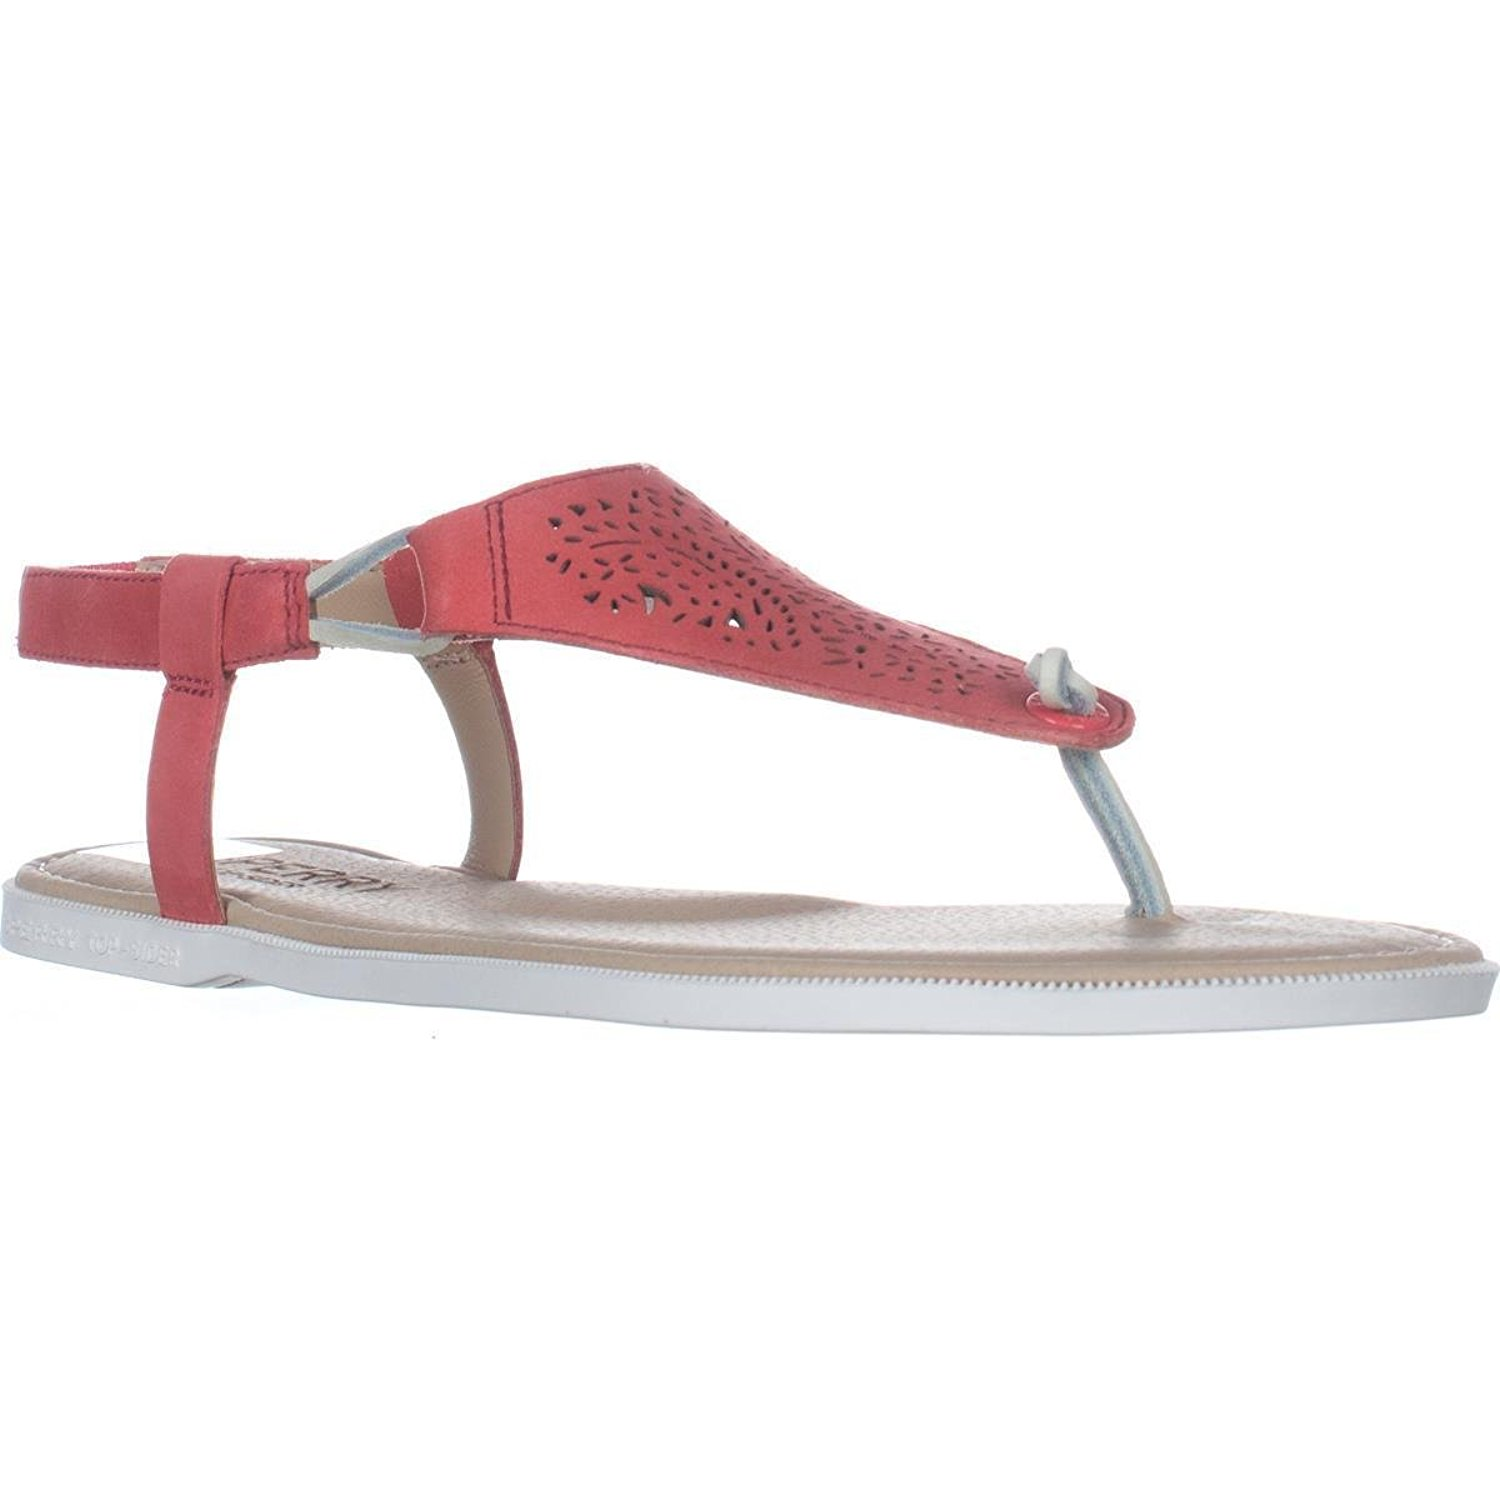 2a120e6140c Get Quotations · Sperry Top-Sider Calla Jade Flat Thong Sandals - Rose